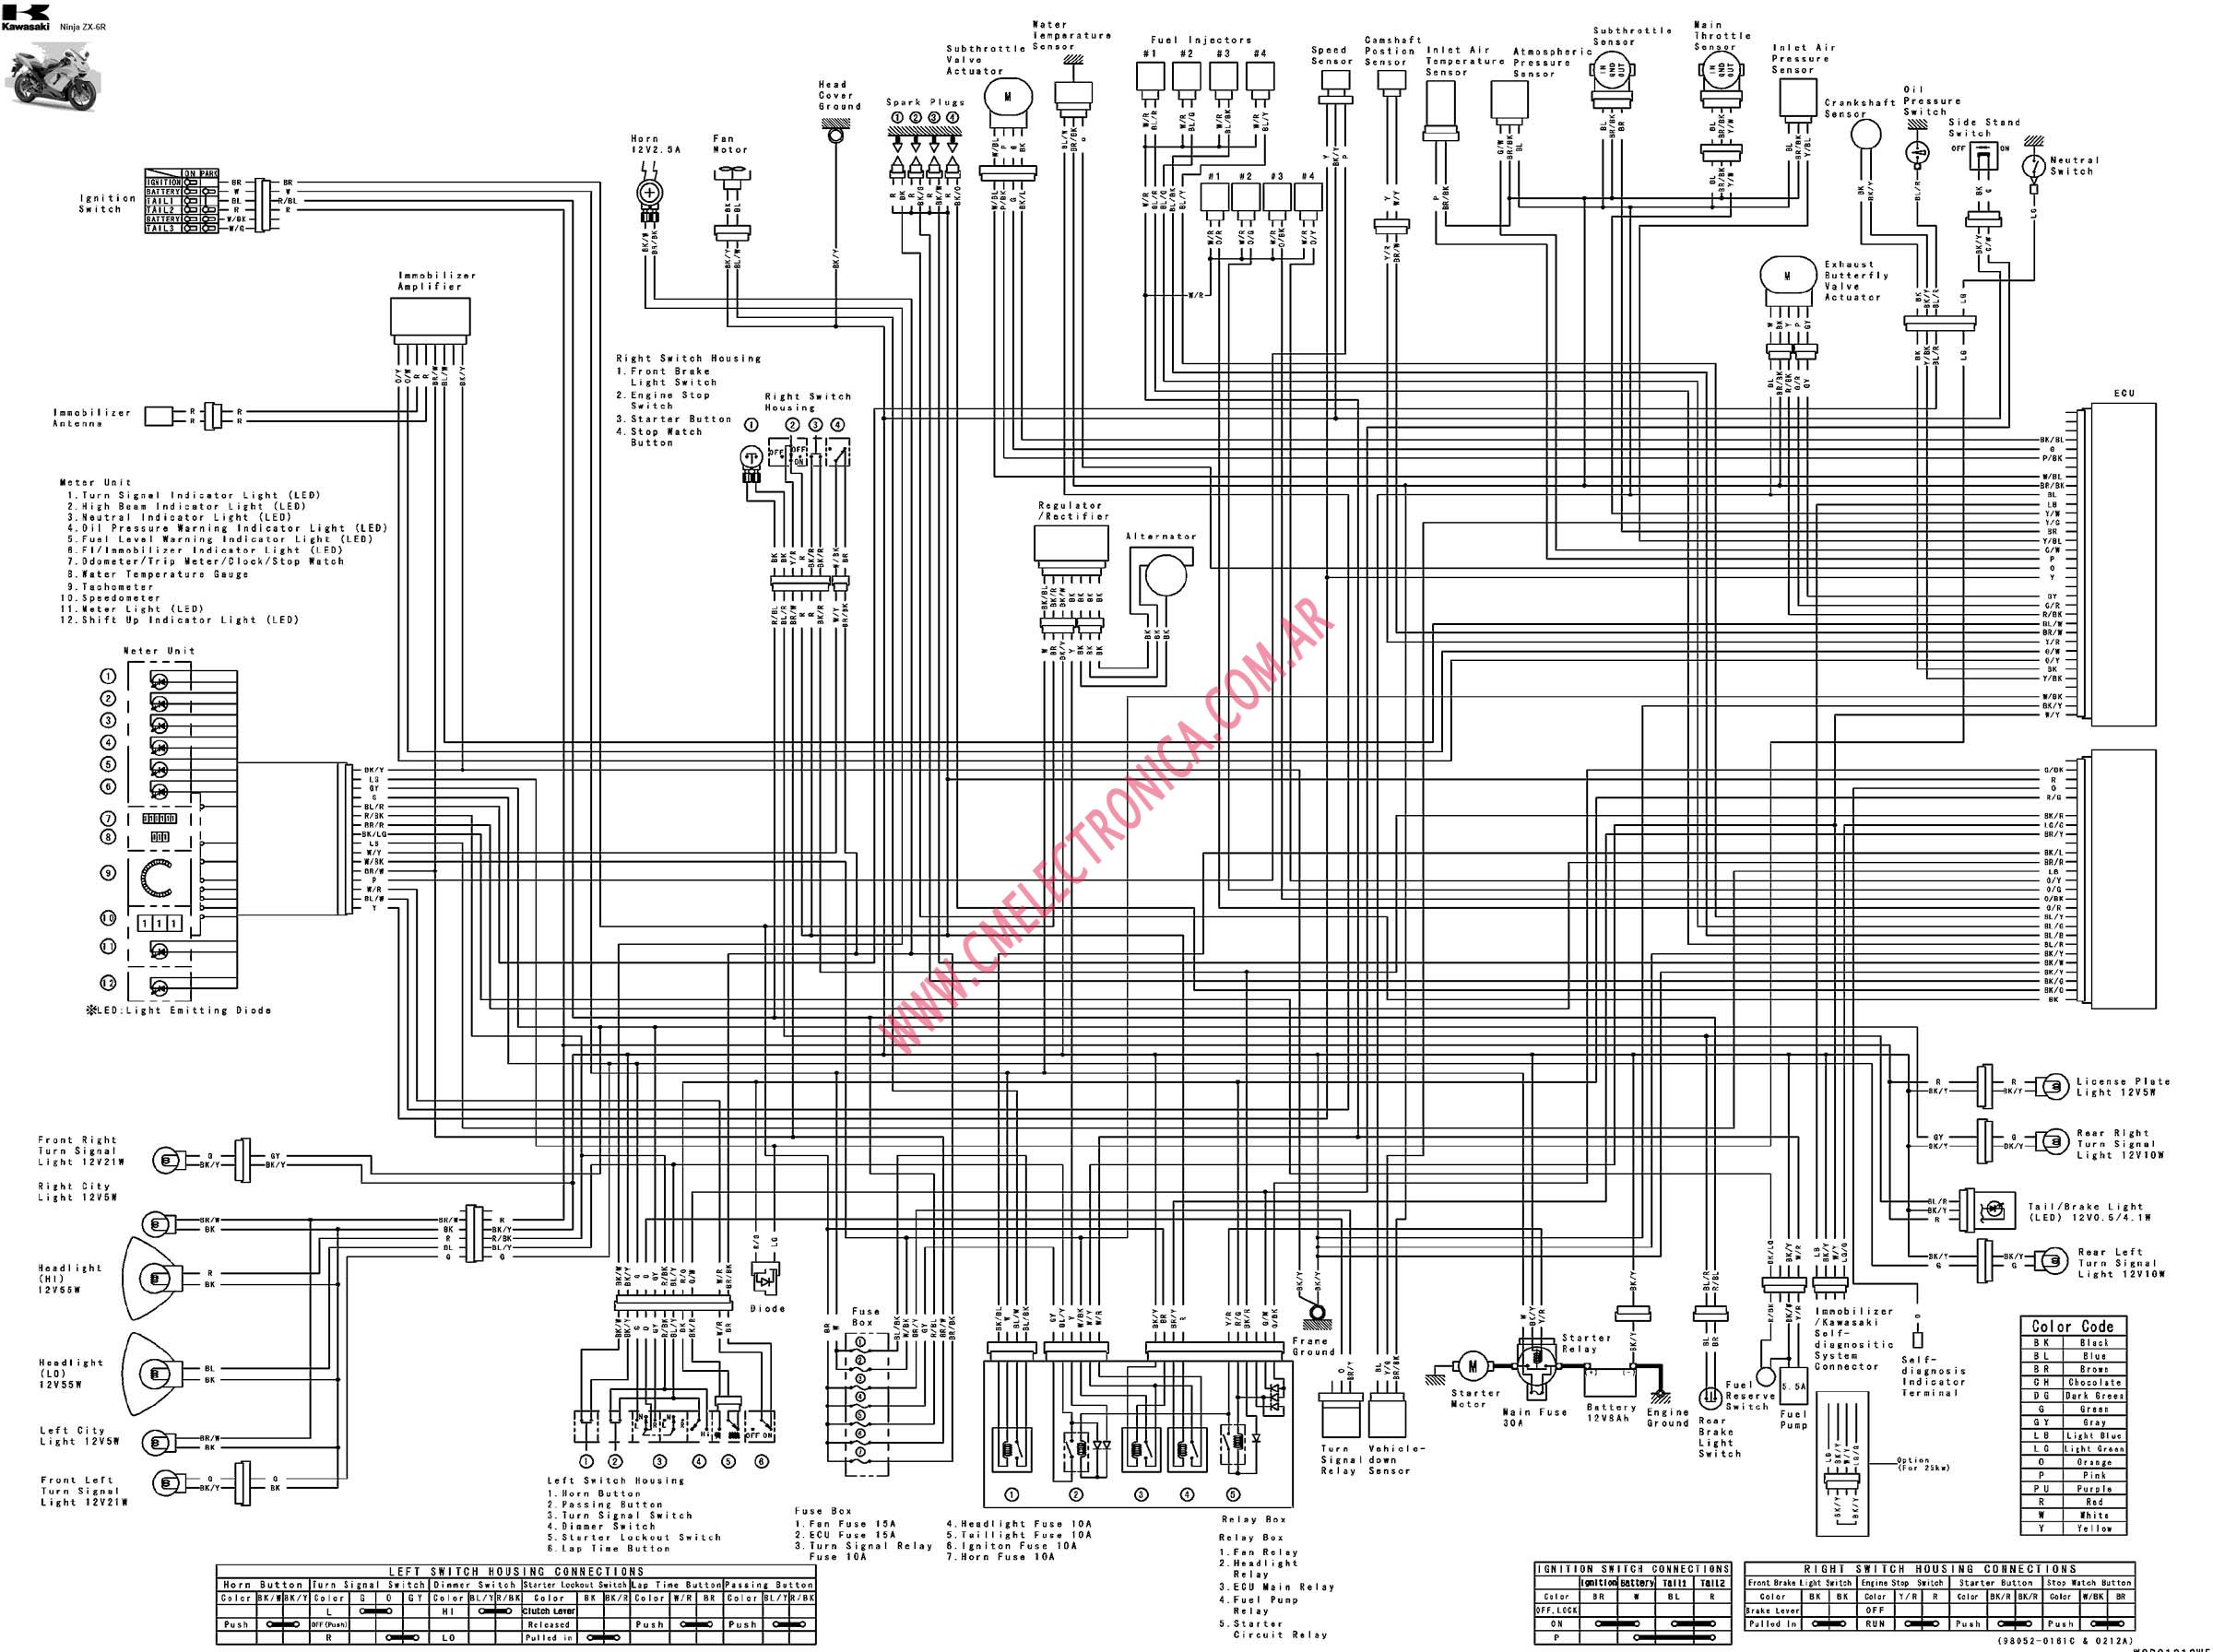 [DIAGRAM_1JK]  C501 05 Kawasaki 636 Wiring Diagram | Wiring Library | Zx6r Engine Diagram |  | Wiring Library